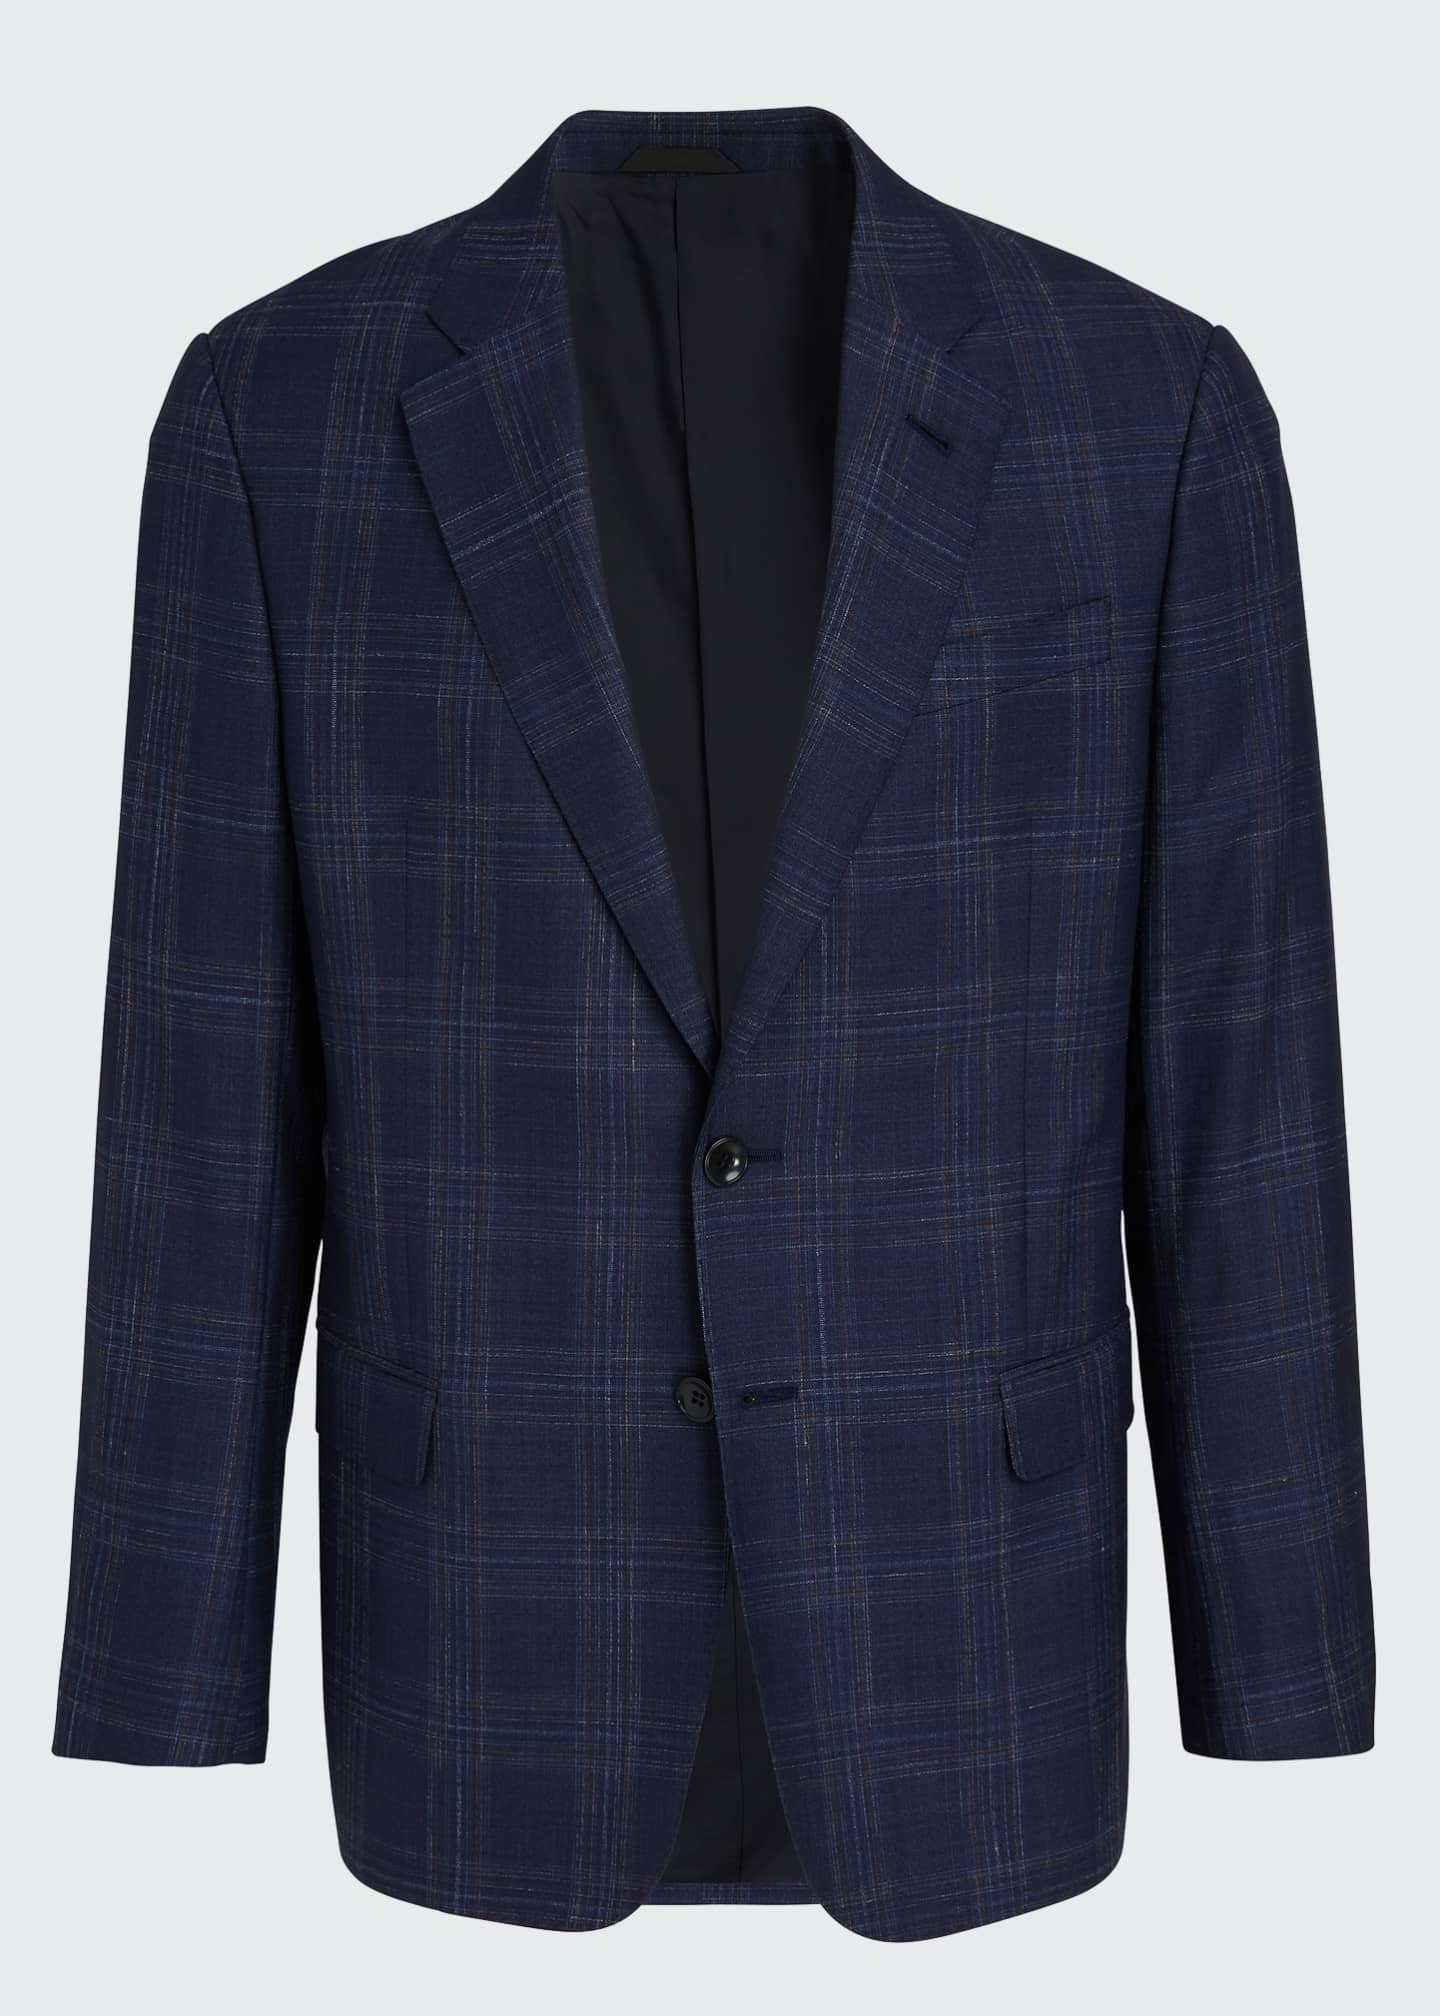 Image 5 of 5: Men's Plaid Wool Two-Button Jacket